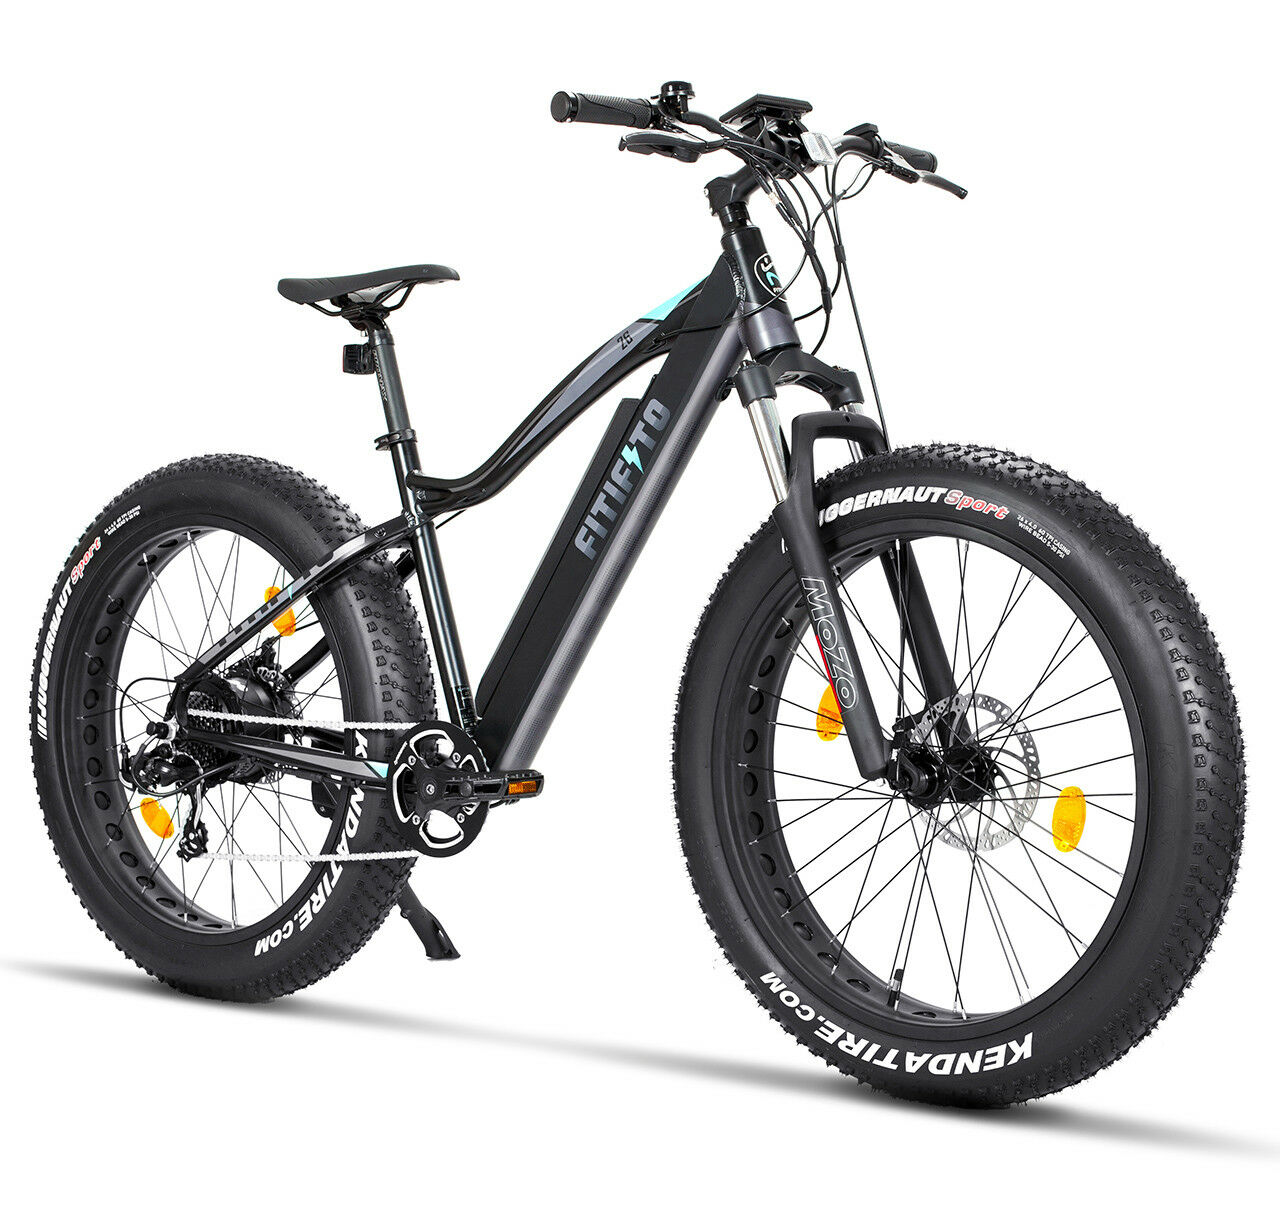 weihnachtsangebot fitifito ft26 elektrofahrrad fatbike e bike pedelec 36v 13ah eur. Black Bedroom Furniture Sets. Home Design Ideas